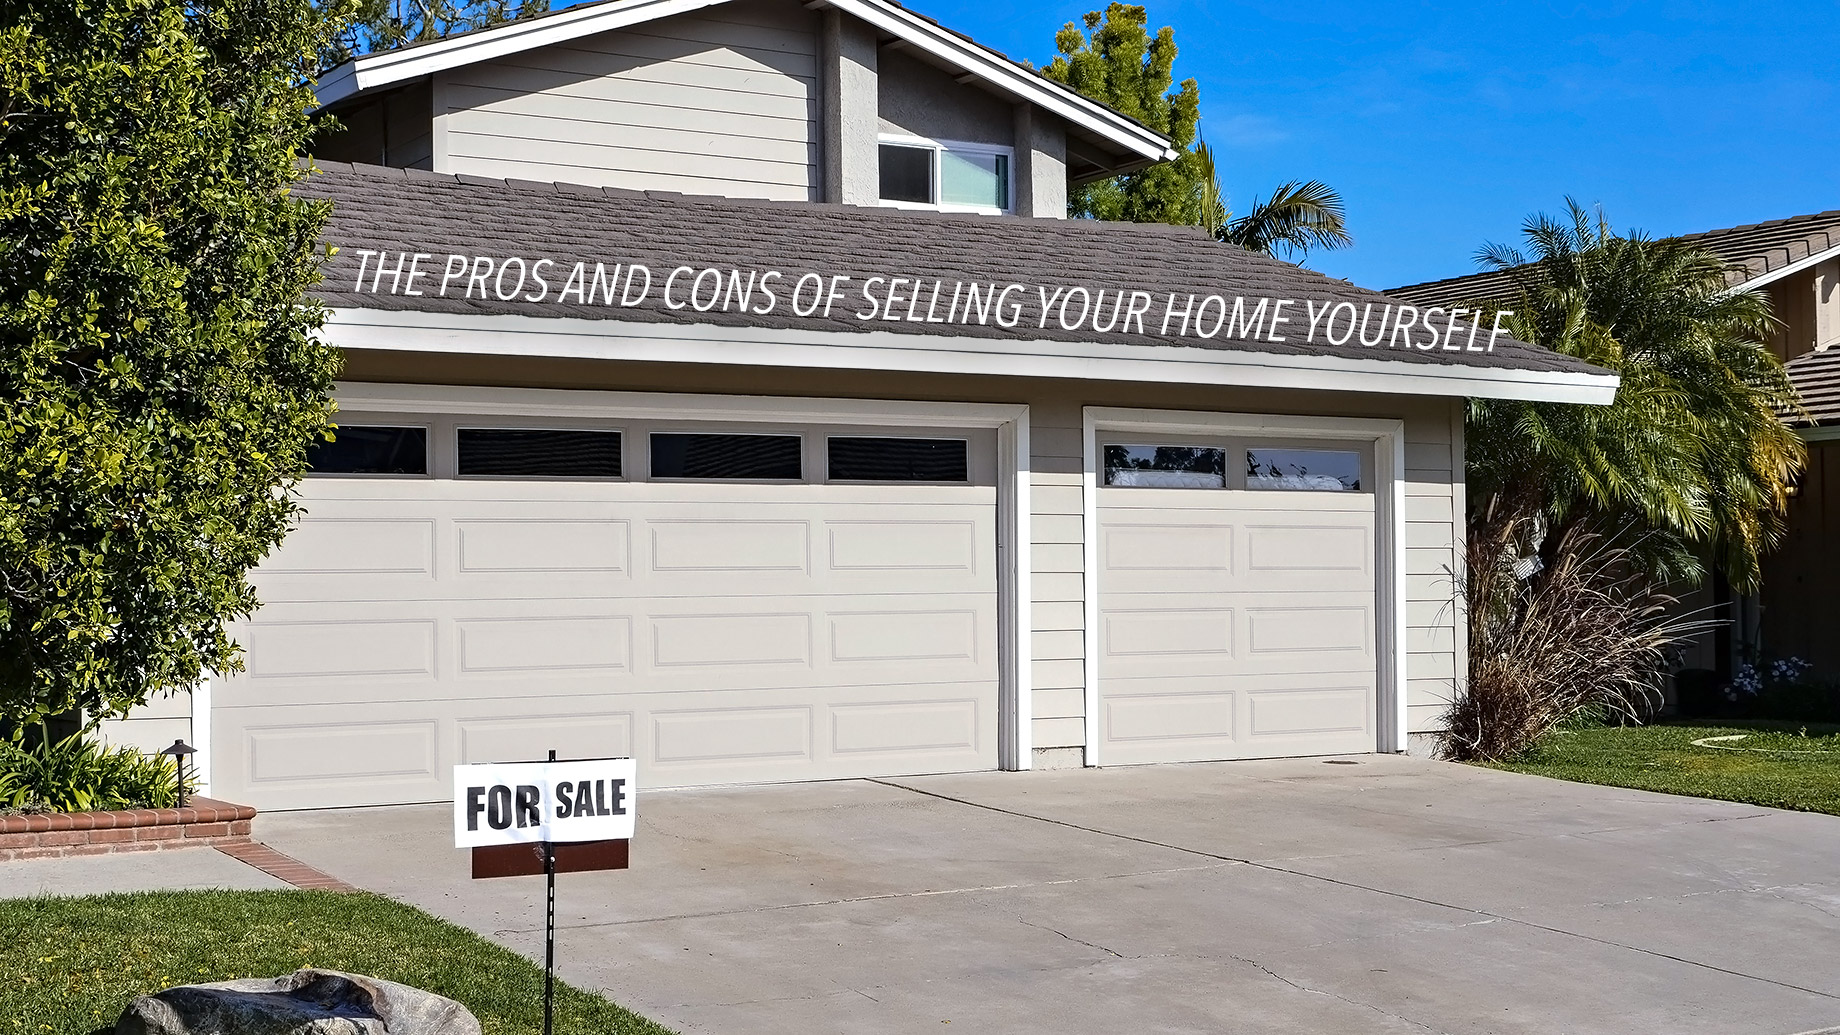 The Pros and Cons of Selling Your Home Yourself